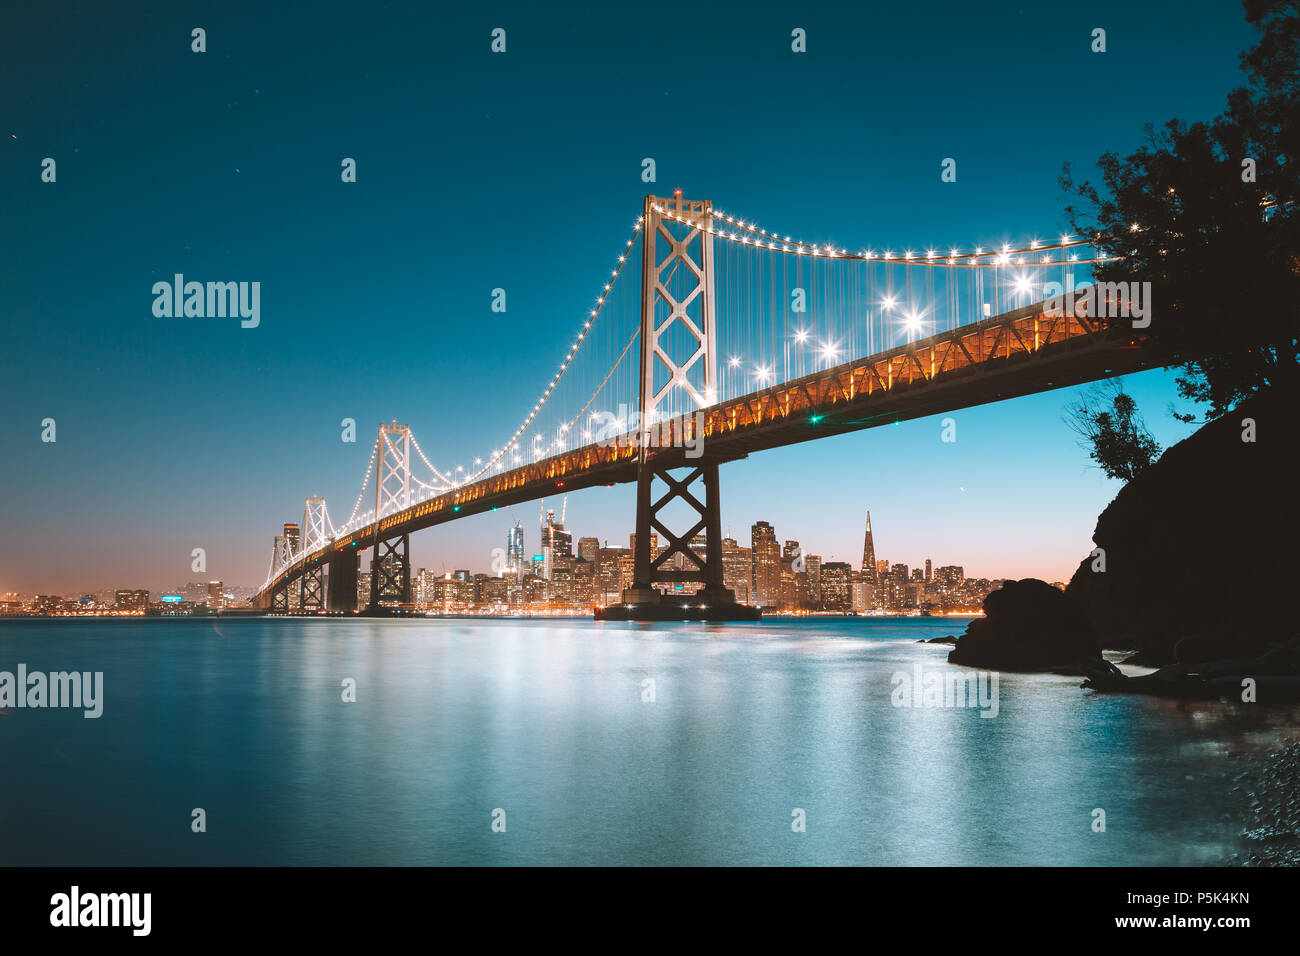 Classic panoramic view of San Francisco skyline with famous Oakland Bay Bridge illuminated in beautiful evening twilight at dusk in summer - Stock Image